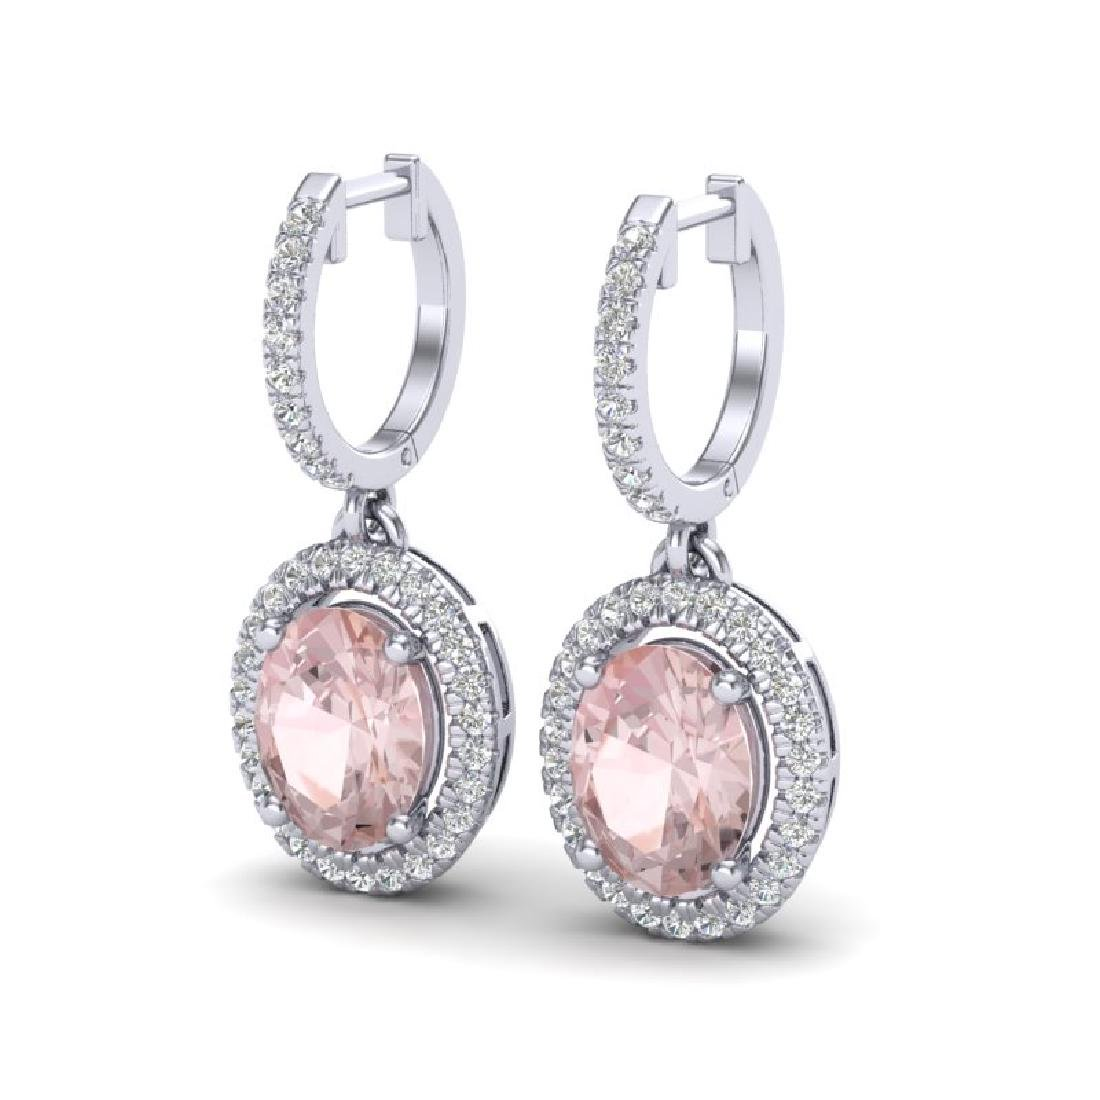 3.25 CTW Morganite & Micro Pave VS/SI Diamond Earrings